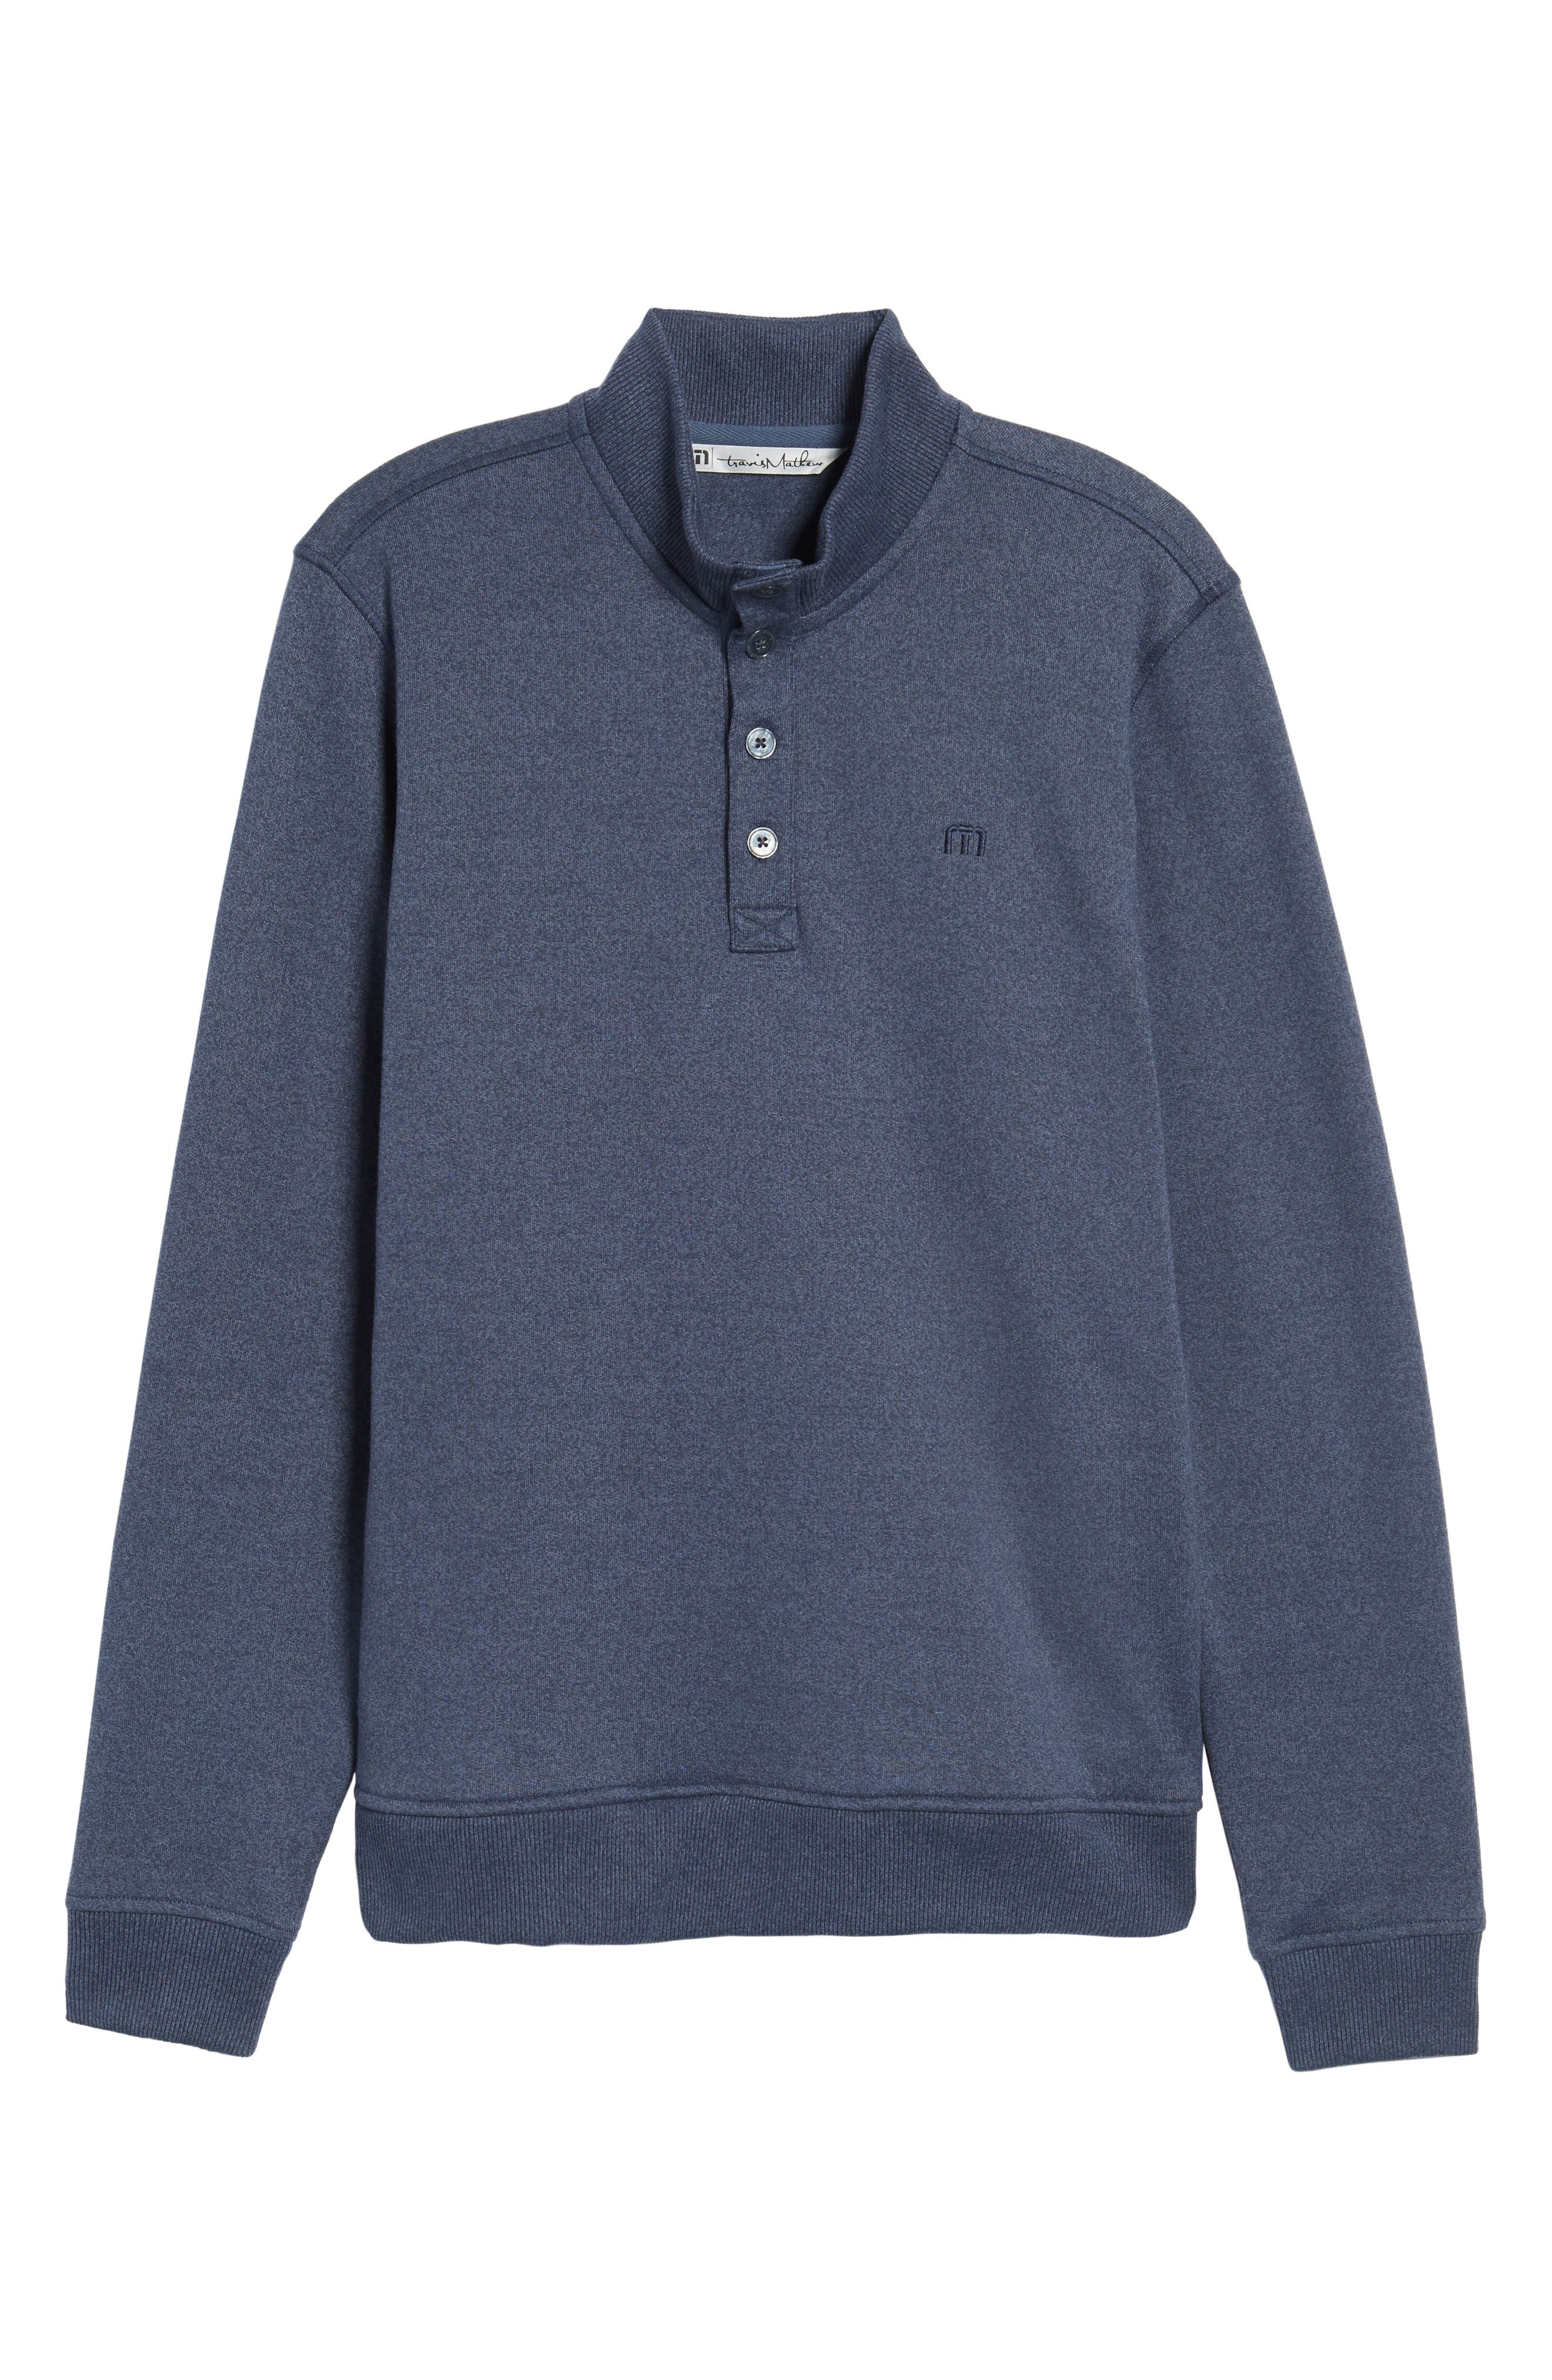 'Wall' Mock Neck Pullover,                             Alternate thumbnail 6, color,                             401